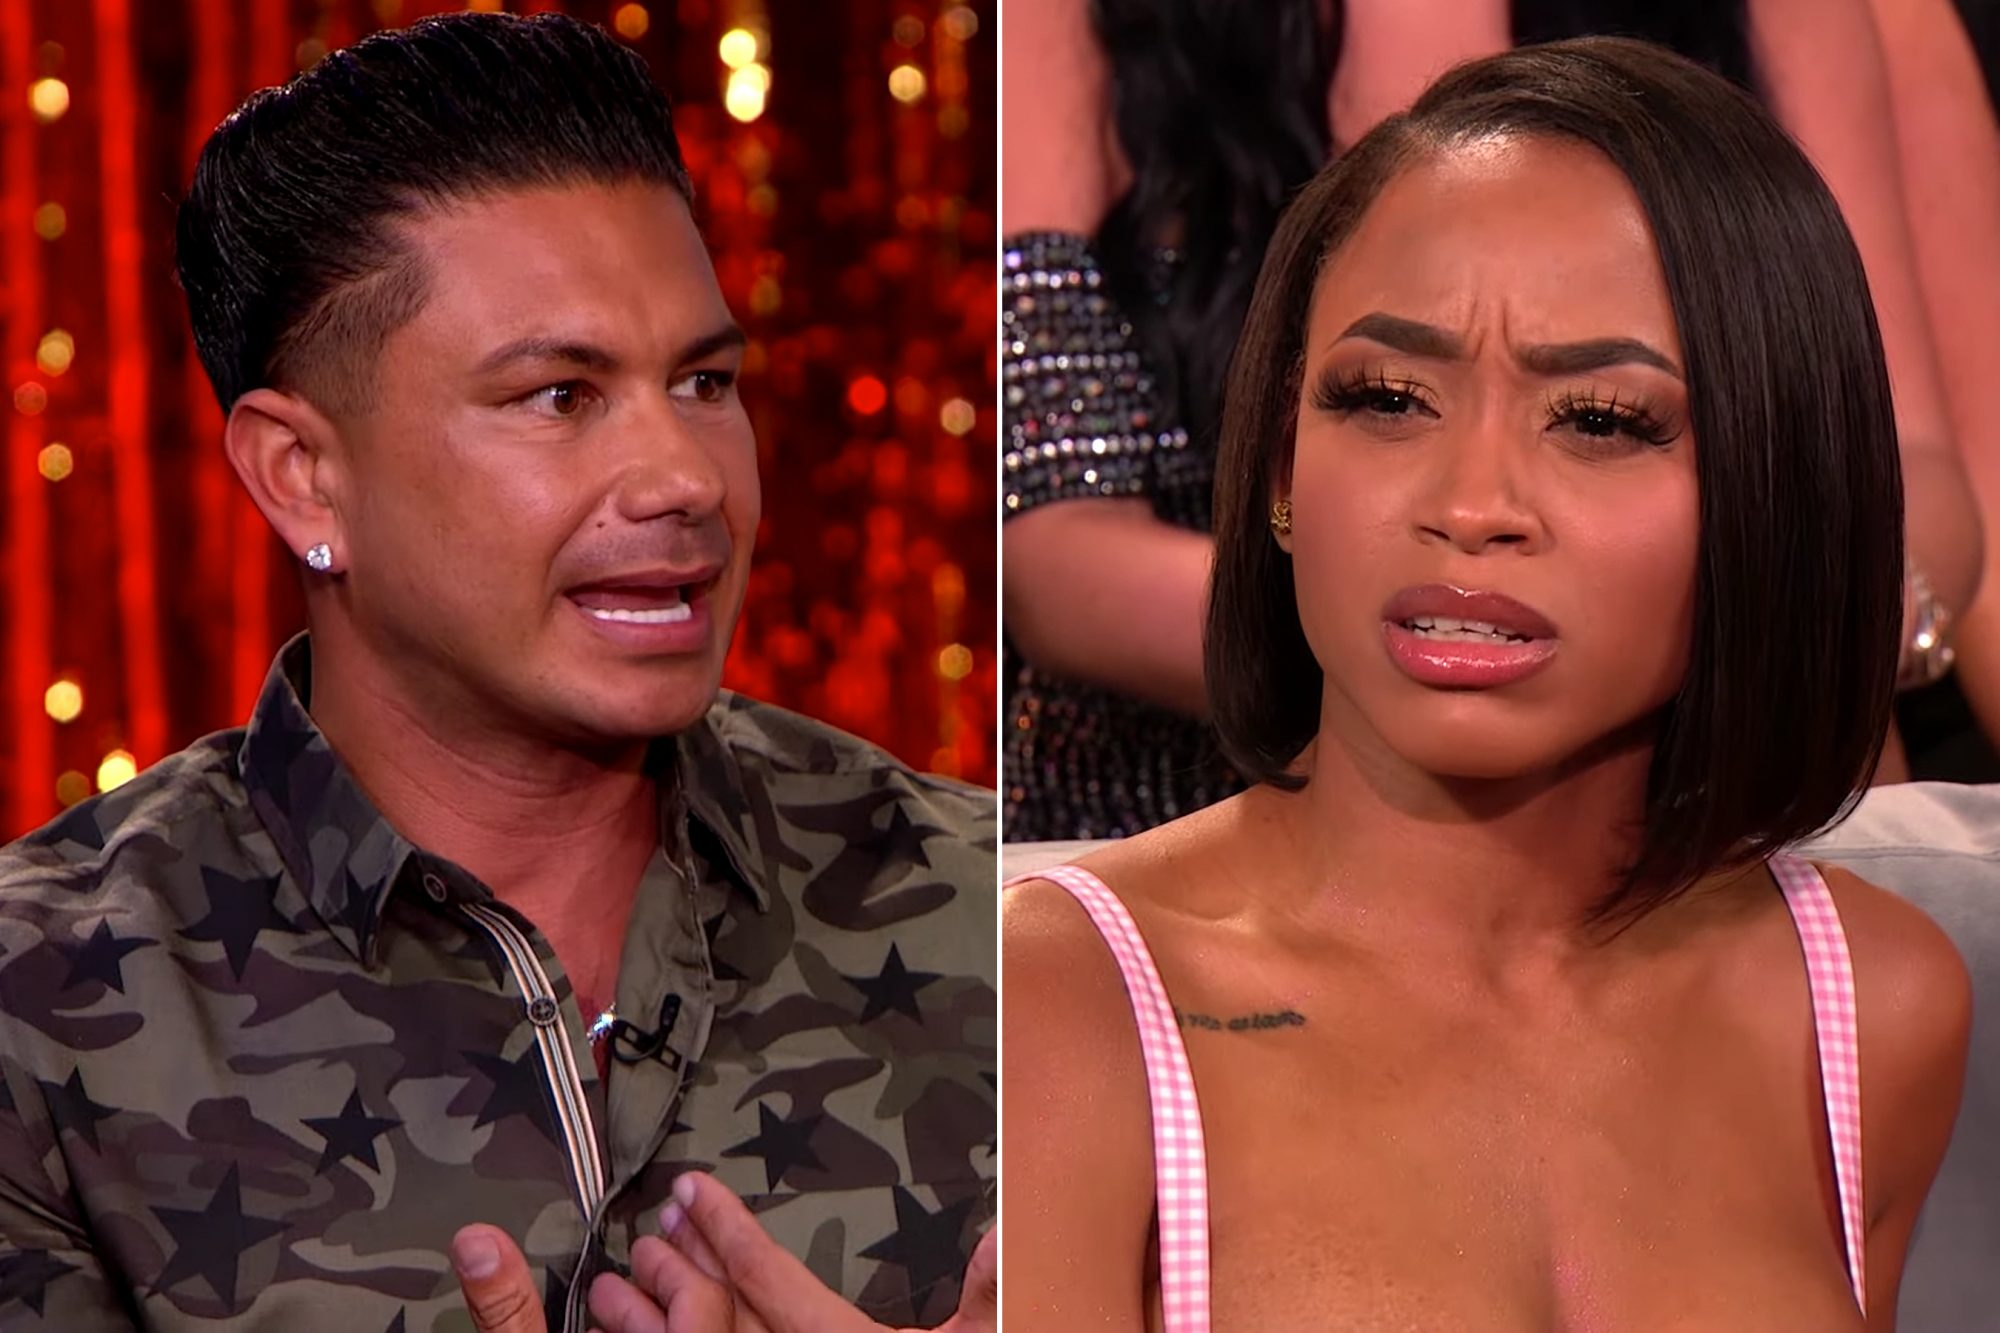 Pauly D, Nikki double shot at love